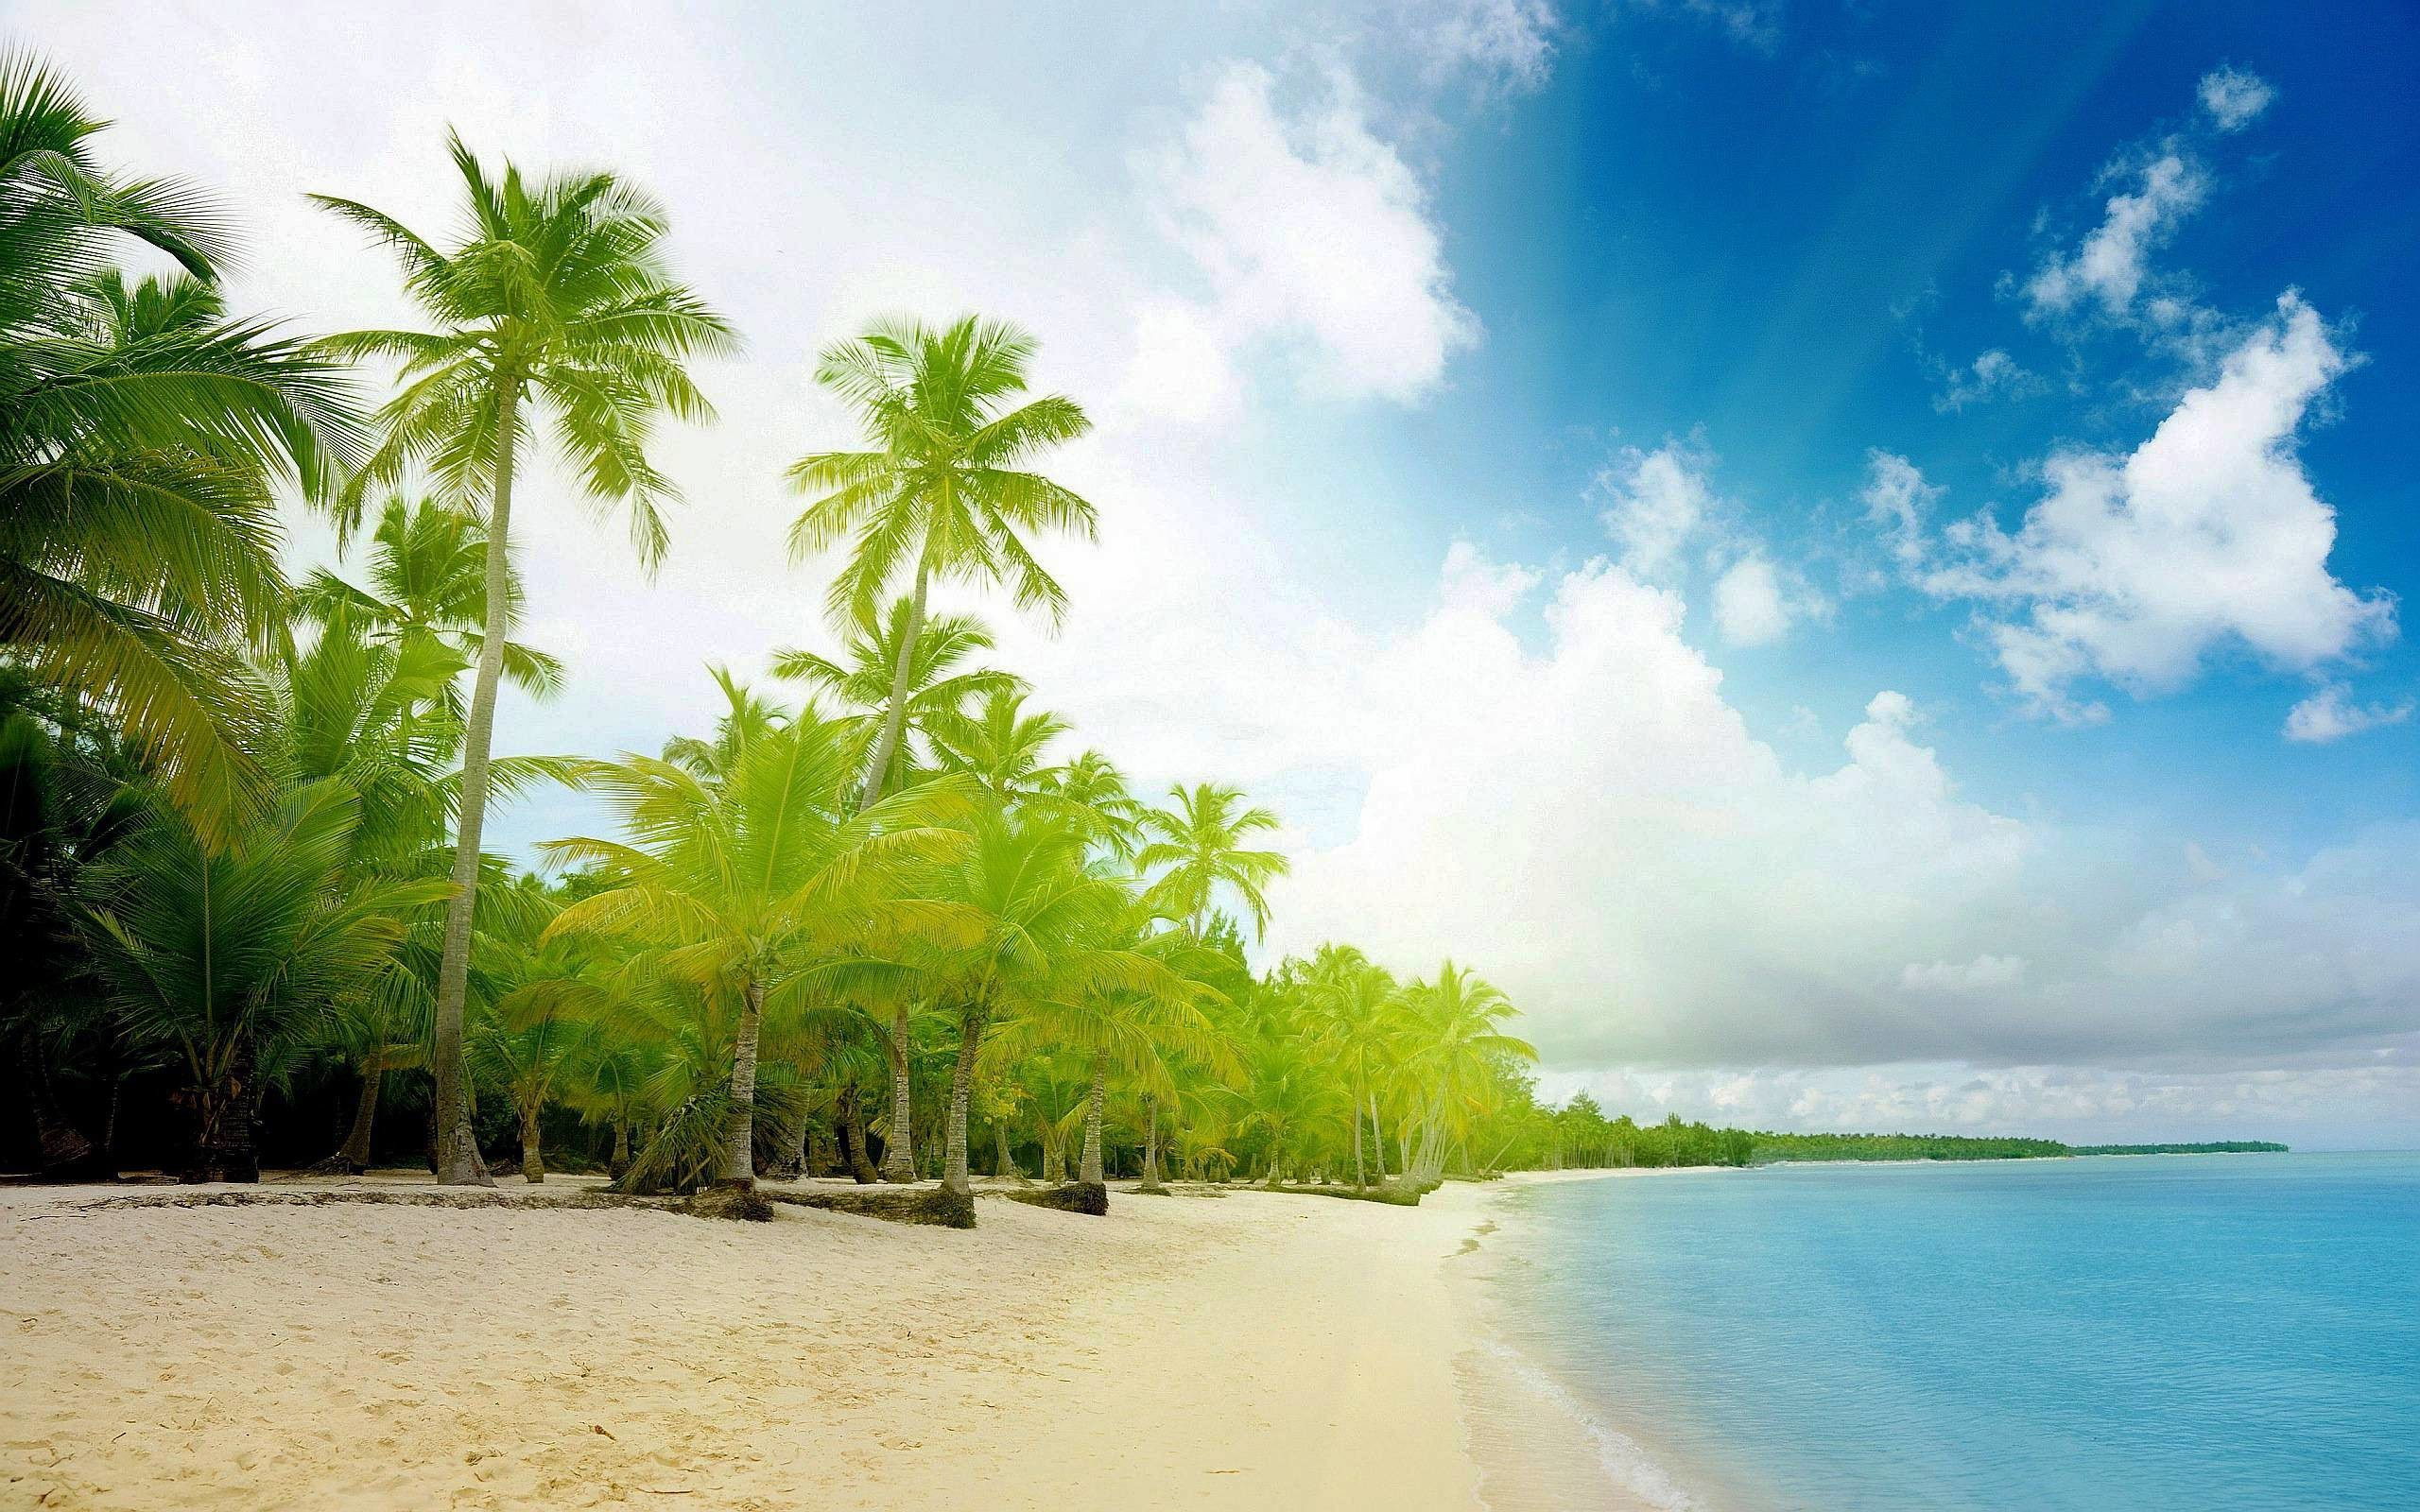 Exotic Beaches Wallpapers Hd 1080P 12 HD Wallpapers | aladdino.